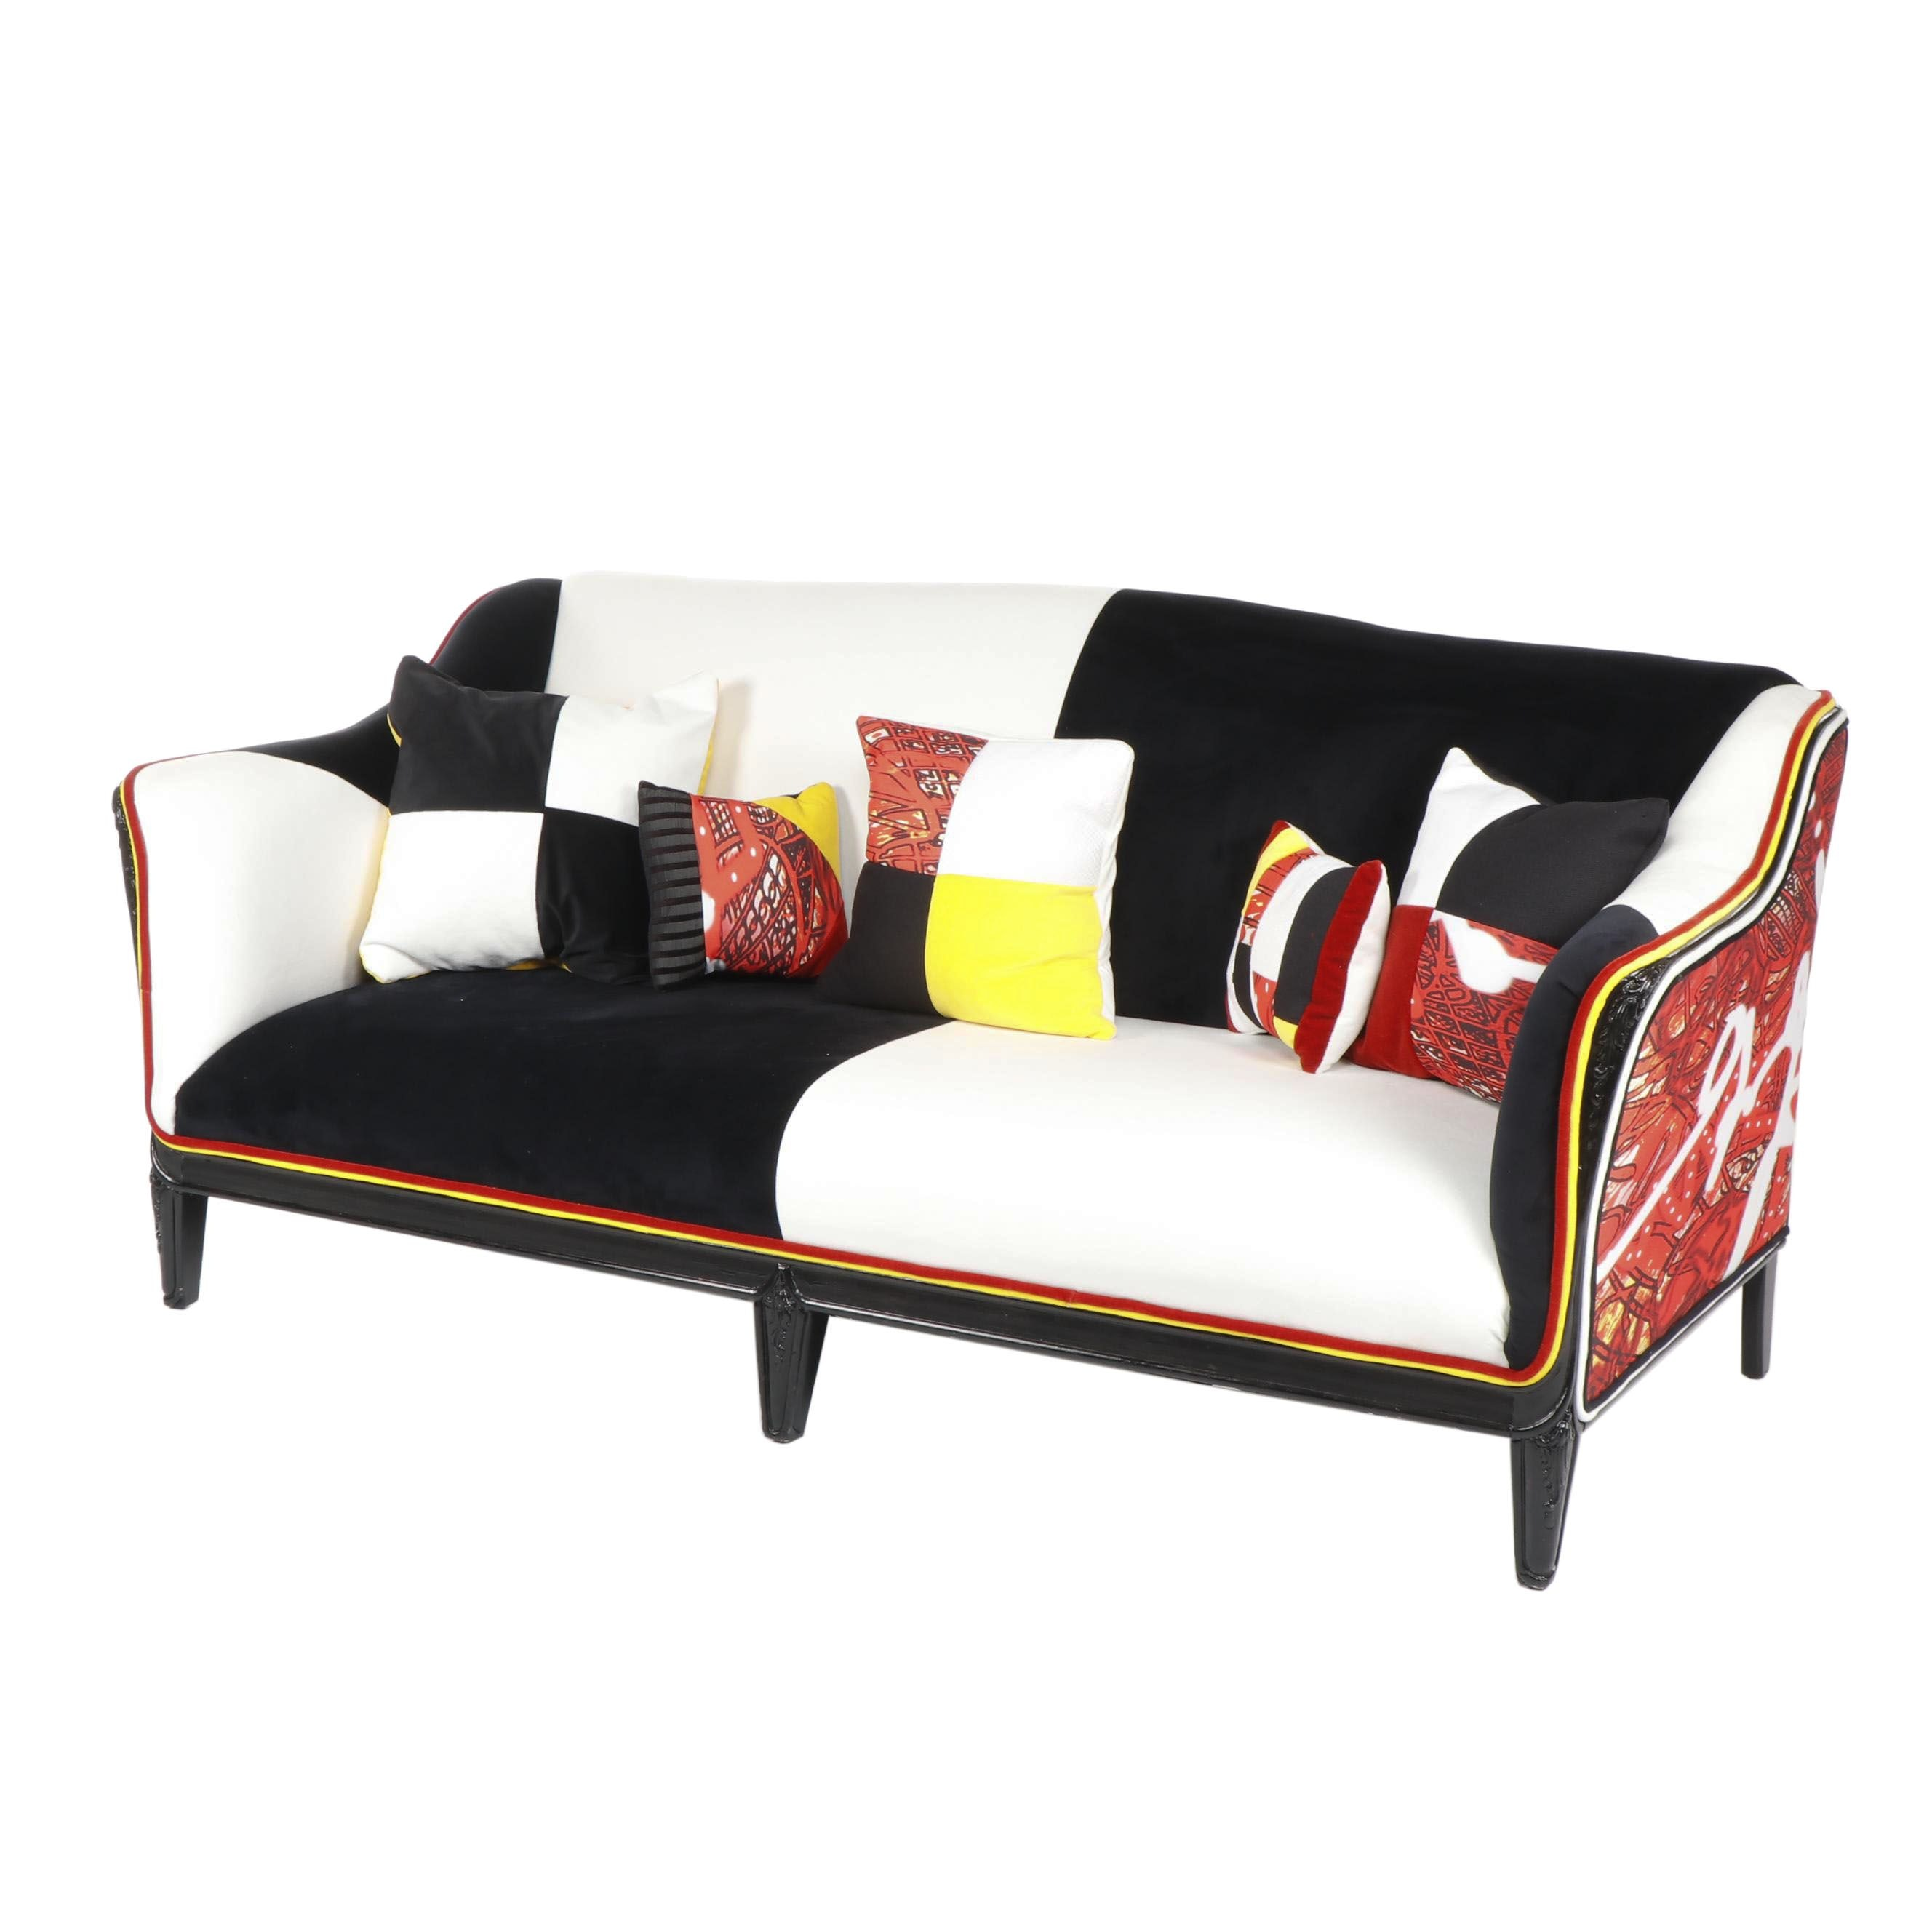 Checkerboard and Bold Print Custom Upholstered Settee